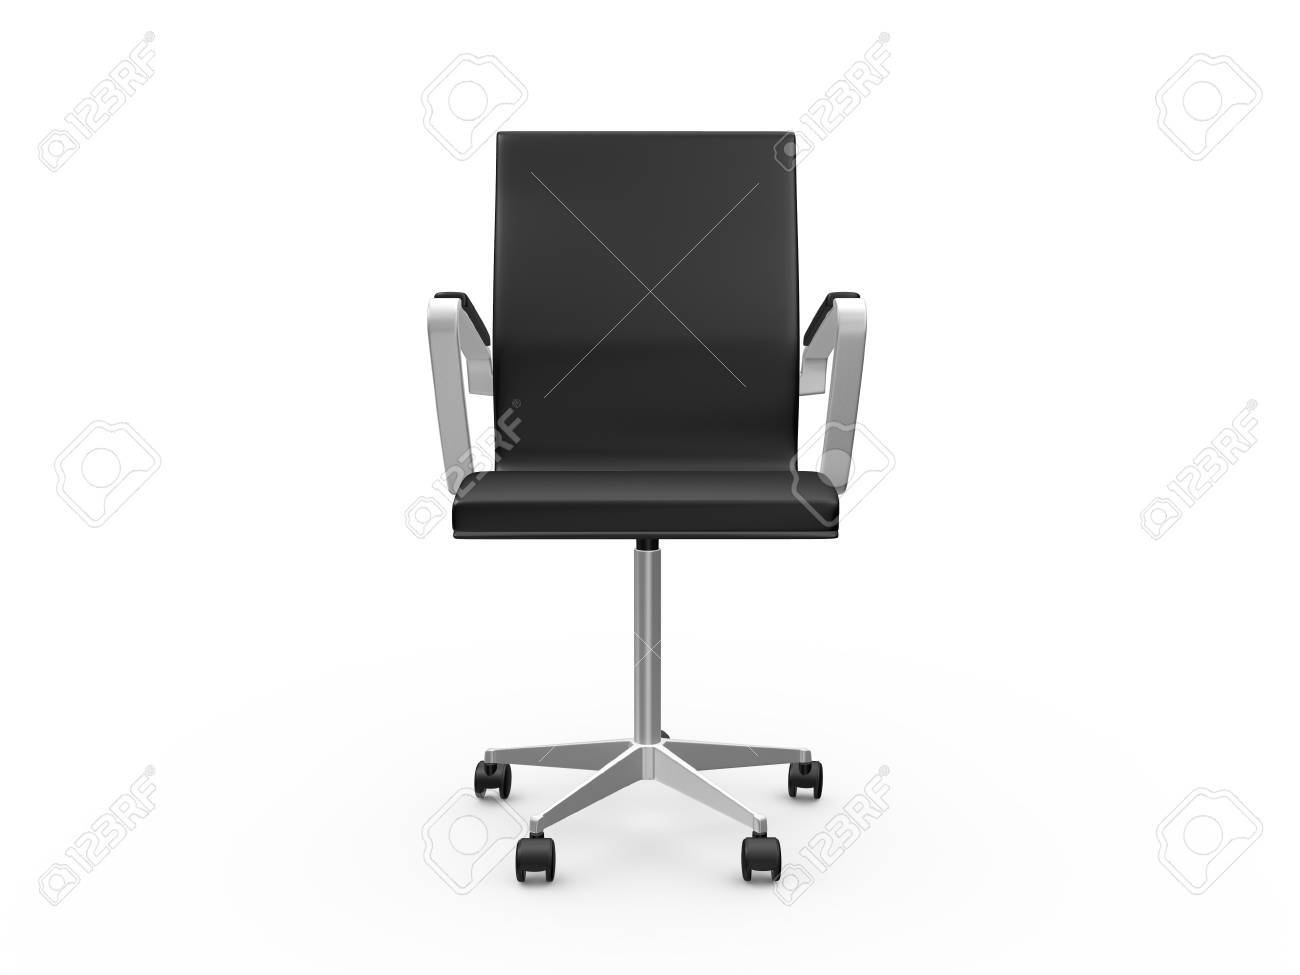 Black Leather Boss Chair For Office, Front View, Isolated On White  Background. Stock